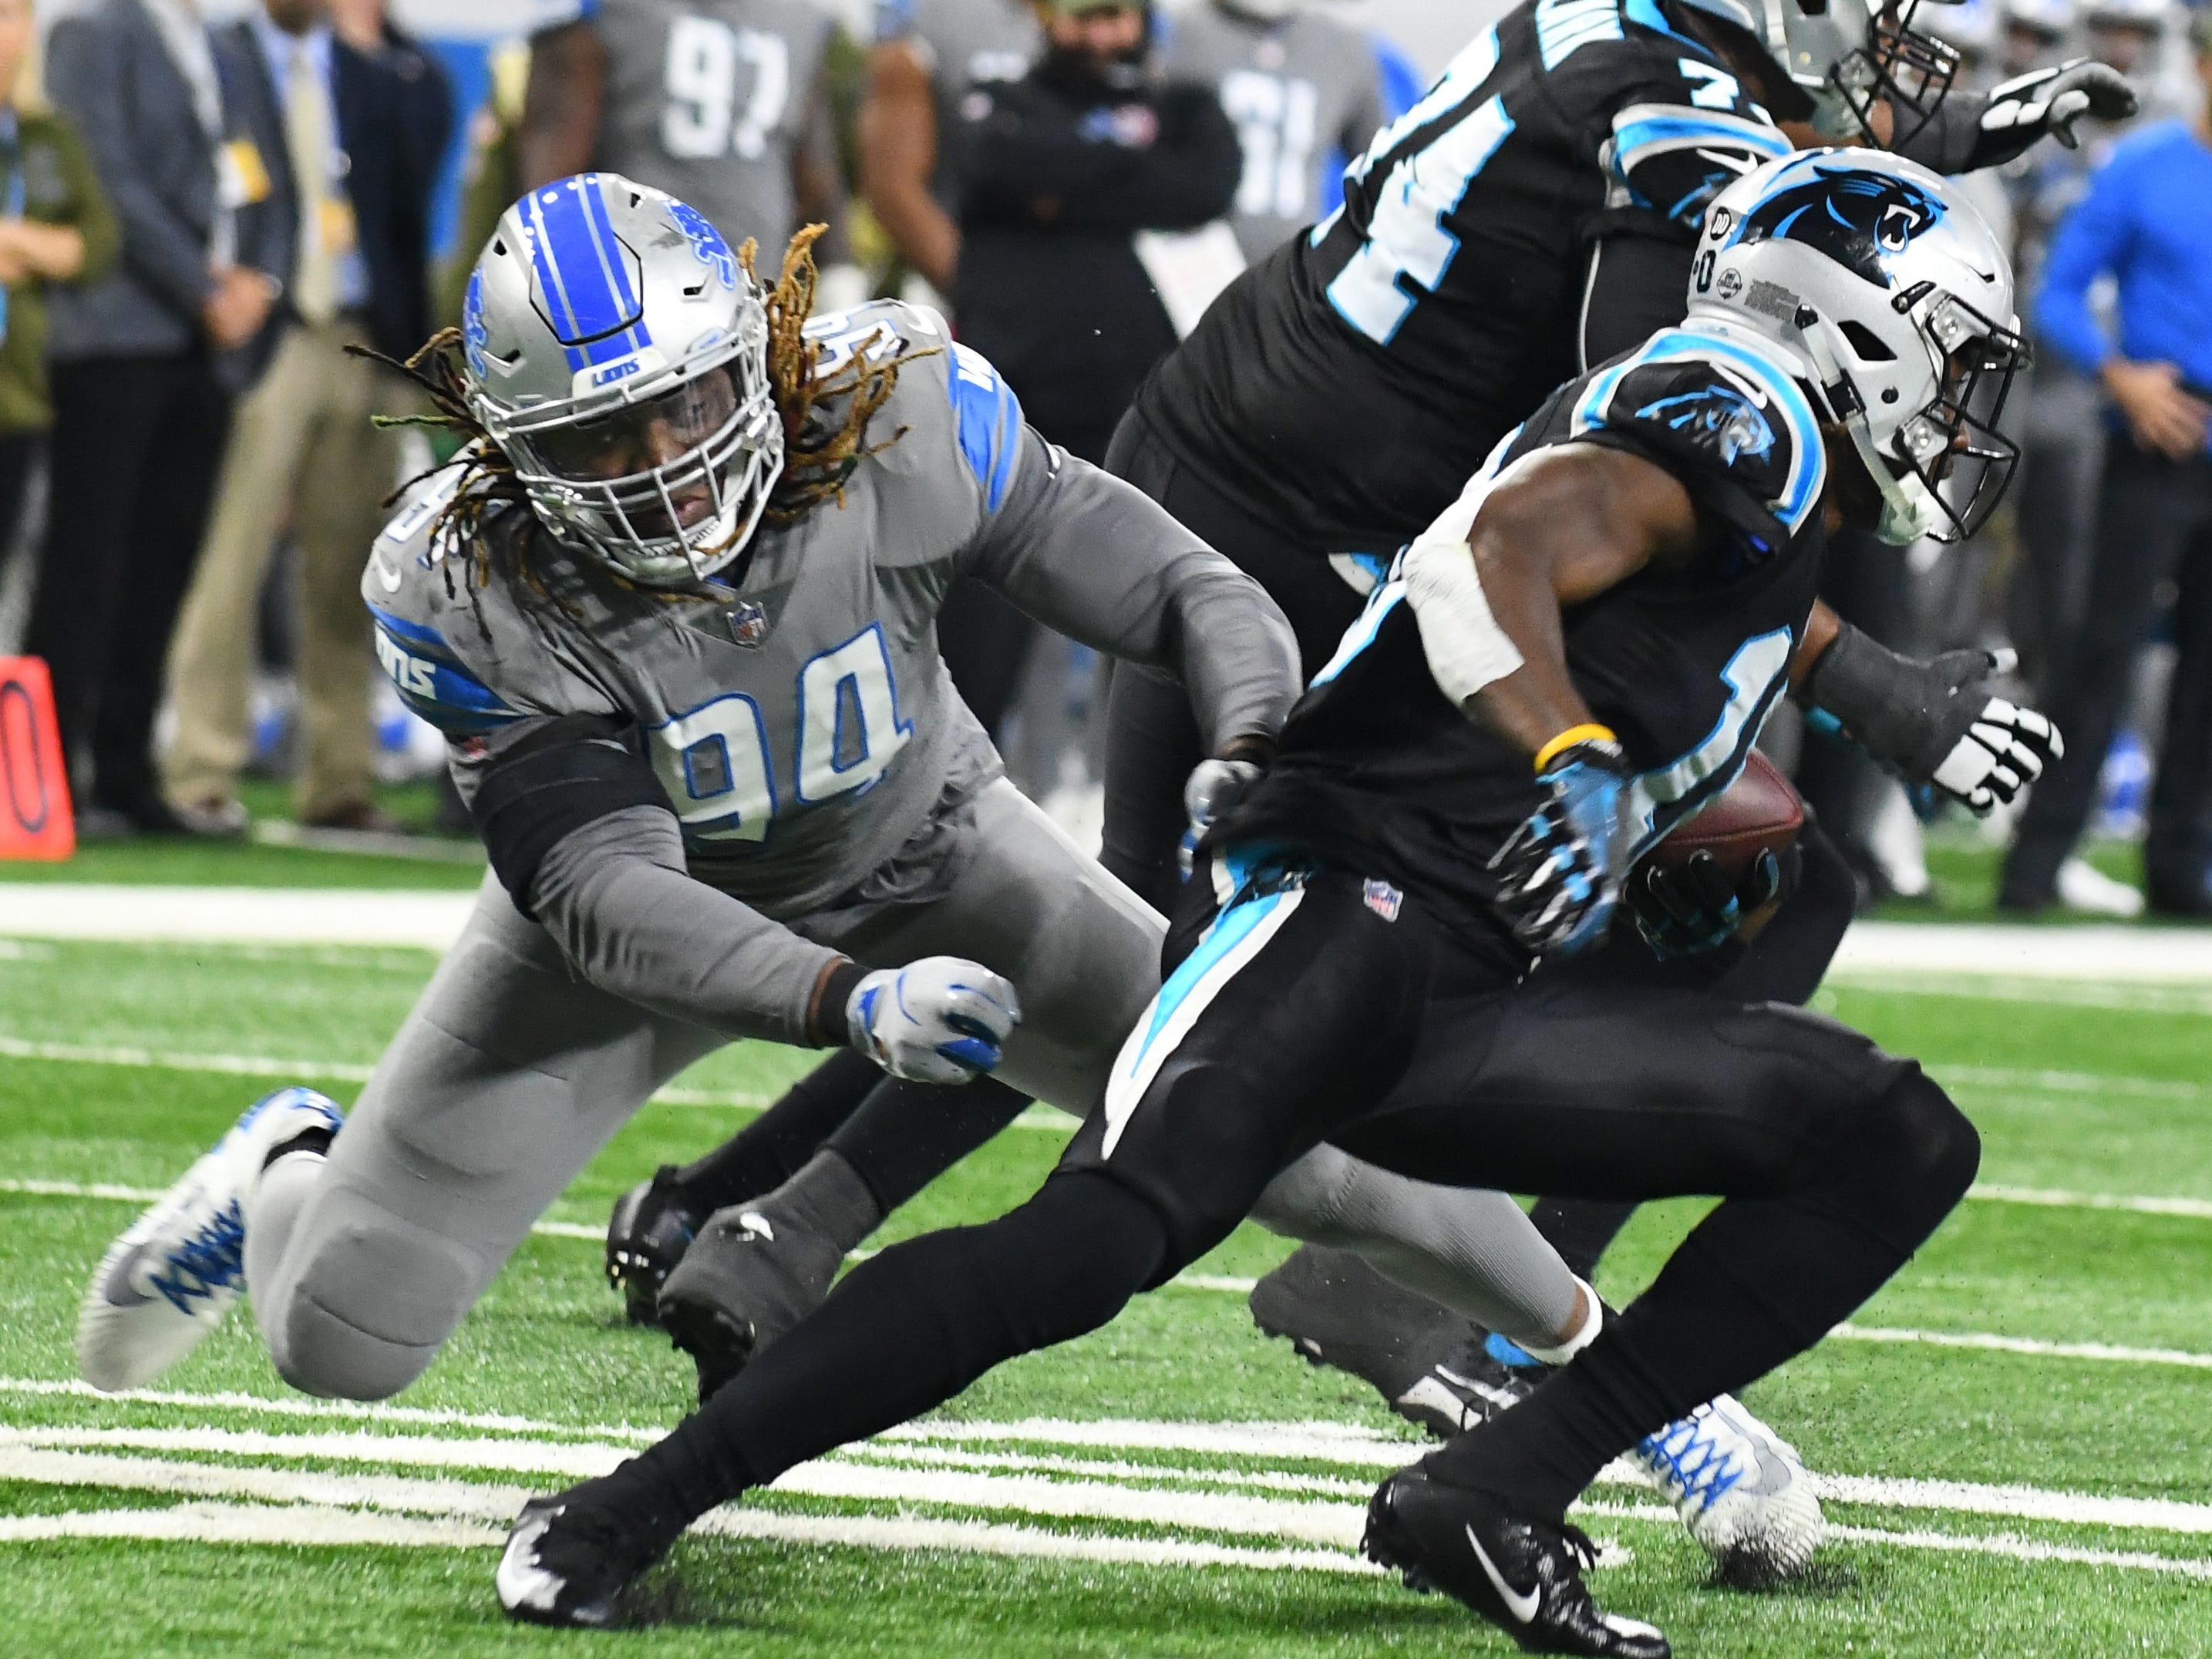 Lions' Ezekiel Ansah slows down Panthers' Torrey Smith, with the defense finishing the job for a loss in the fourth quarter.